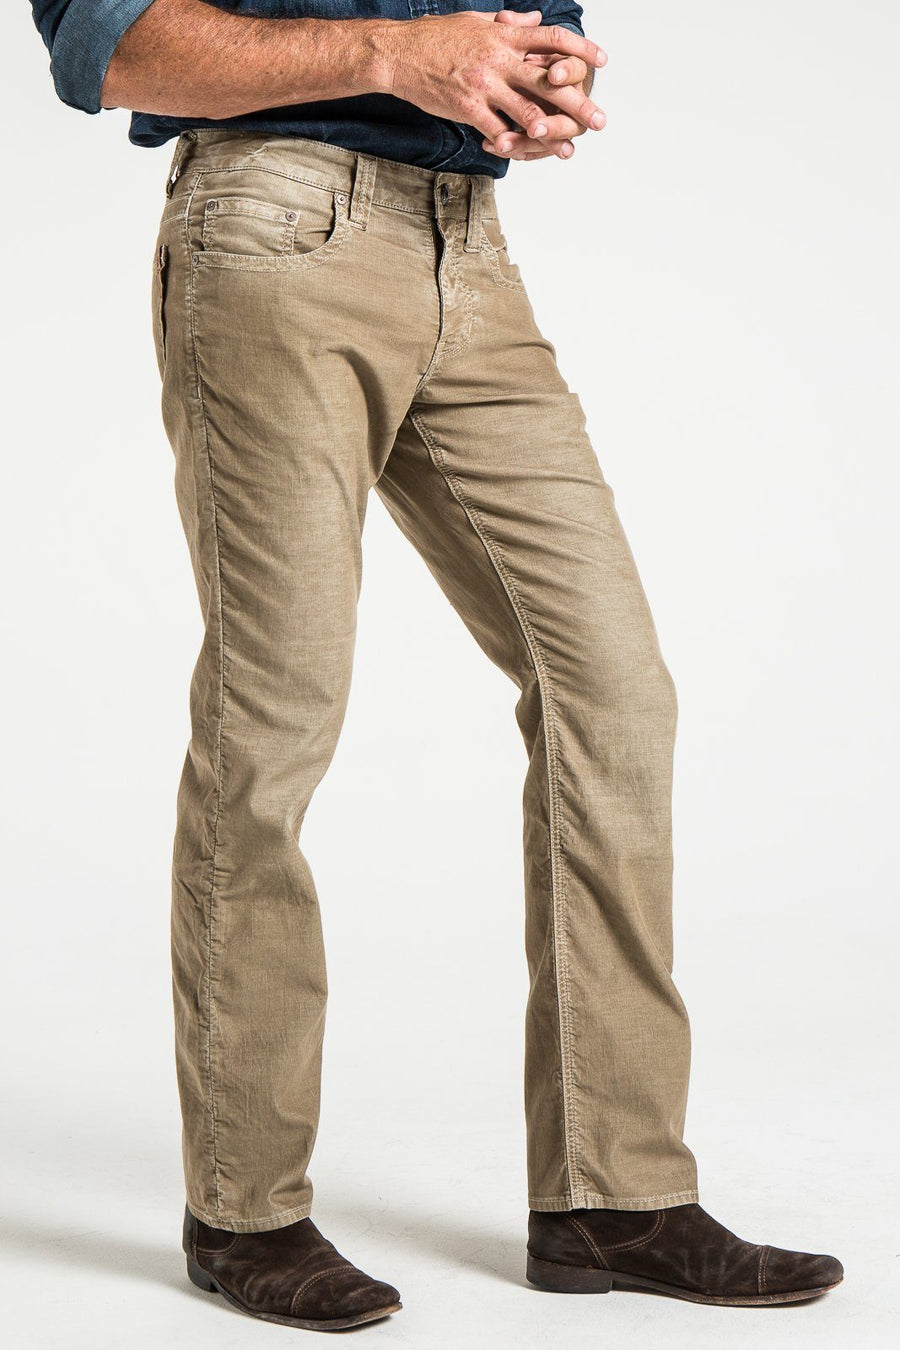 Corduroy jeans rustic man close up front view